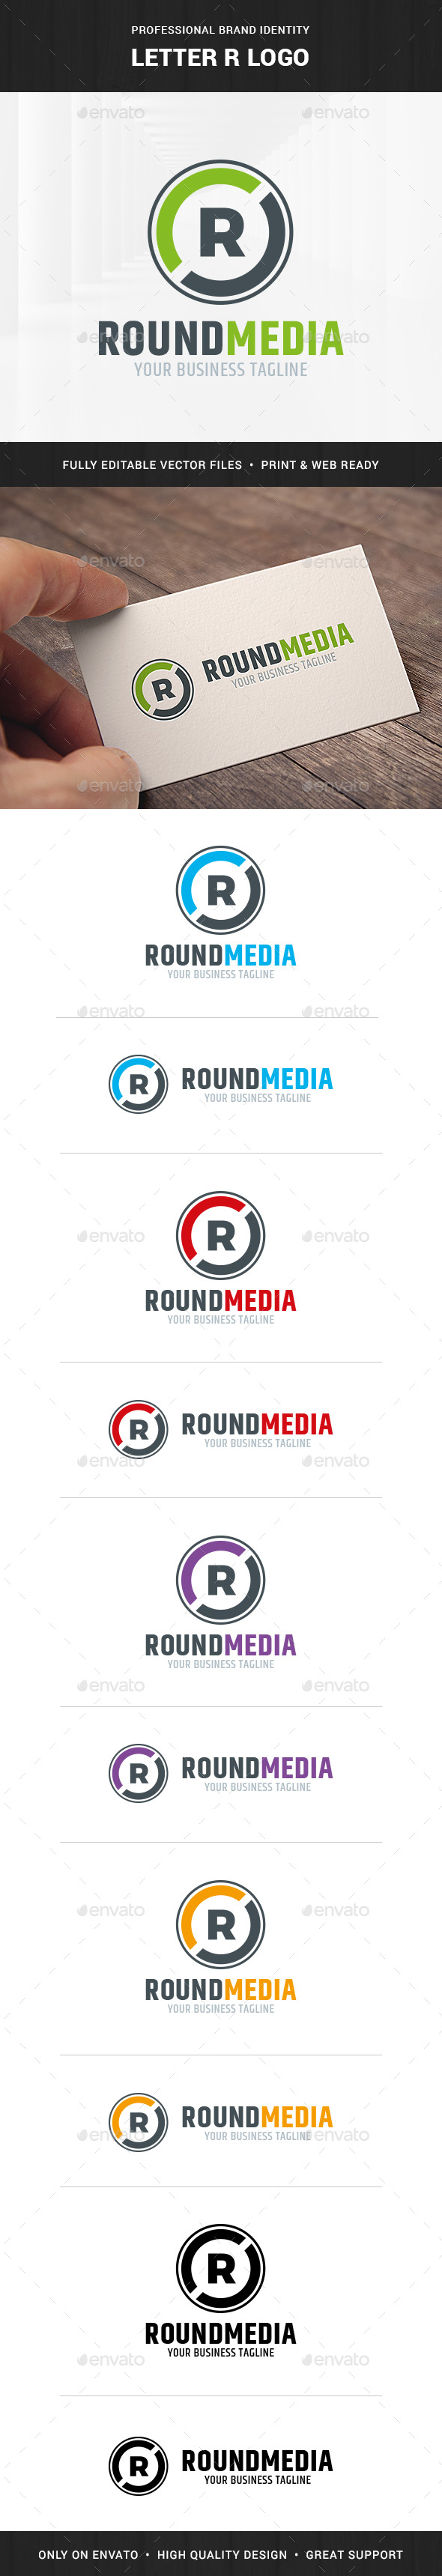 Letter R Logo Template - Letters Logo Templates